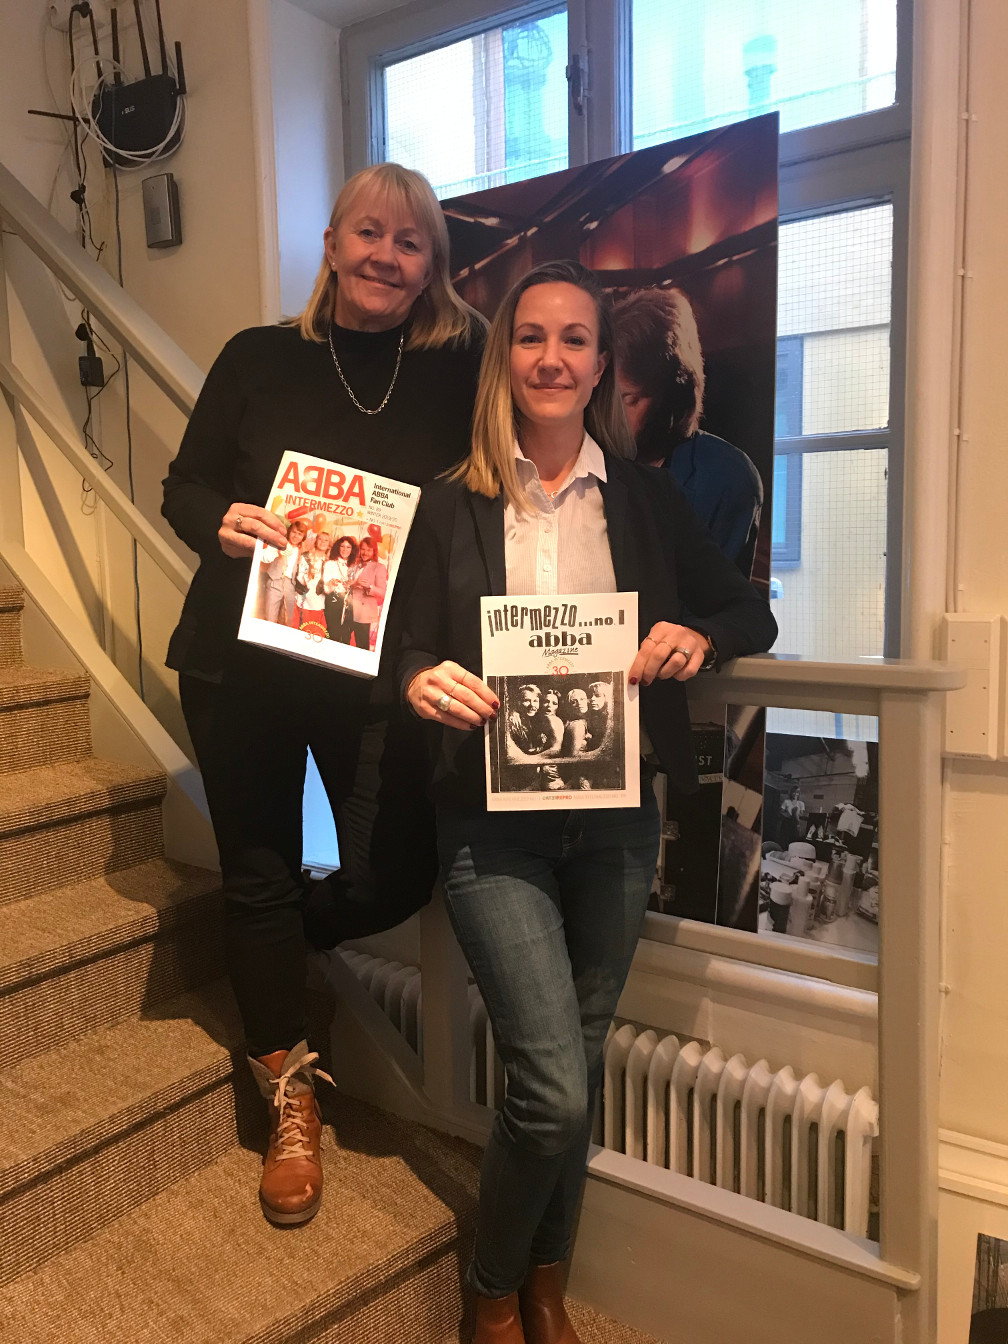 ABBA The Museum: Ingmarie Halling and Caroline Fagerlind